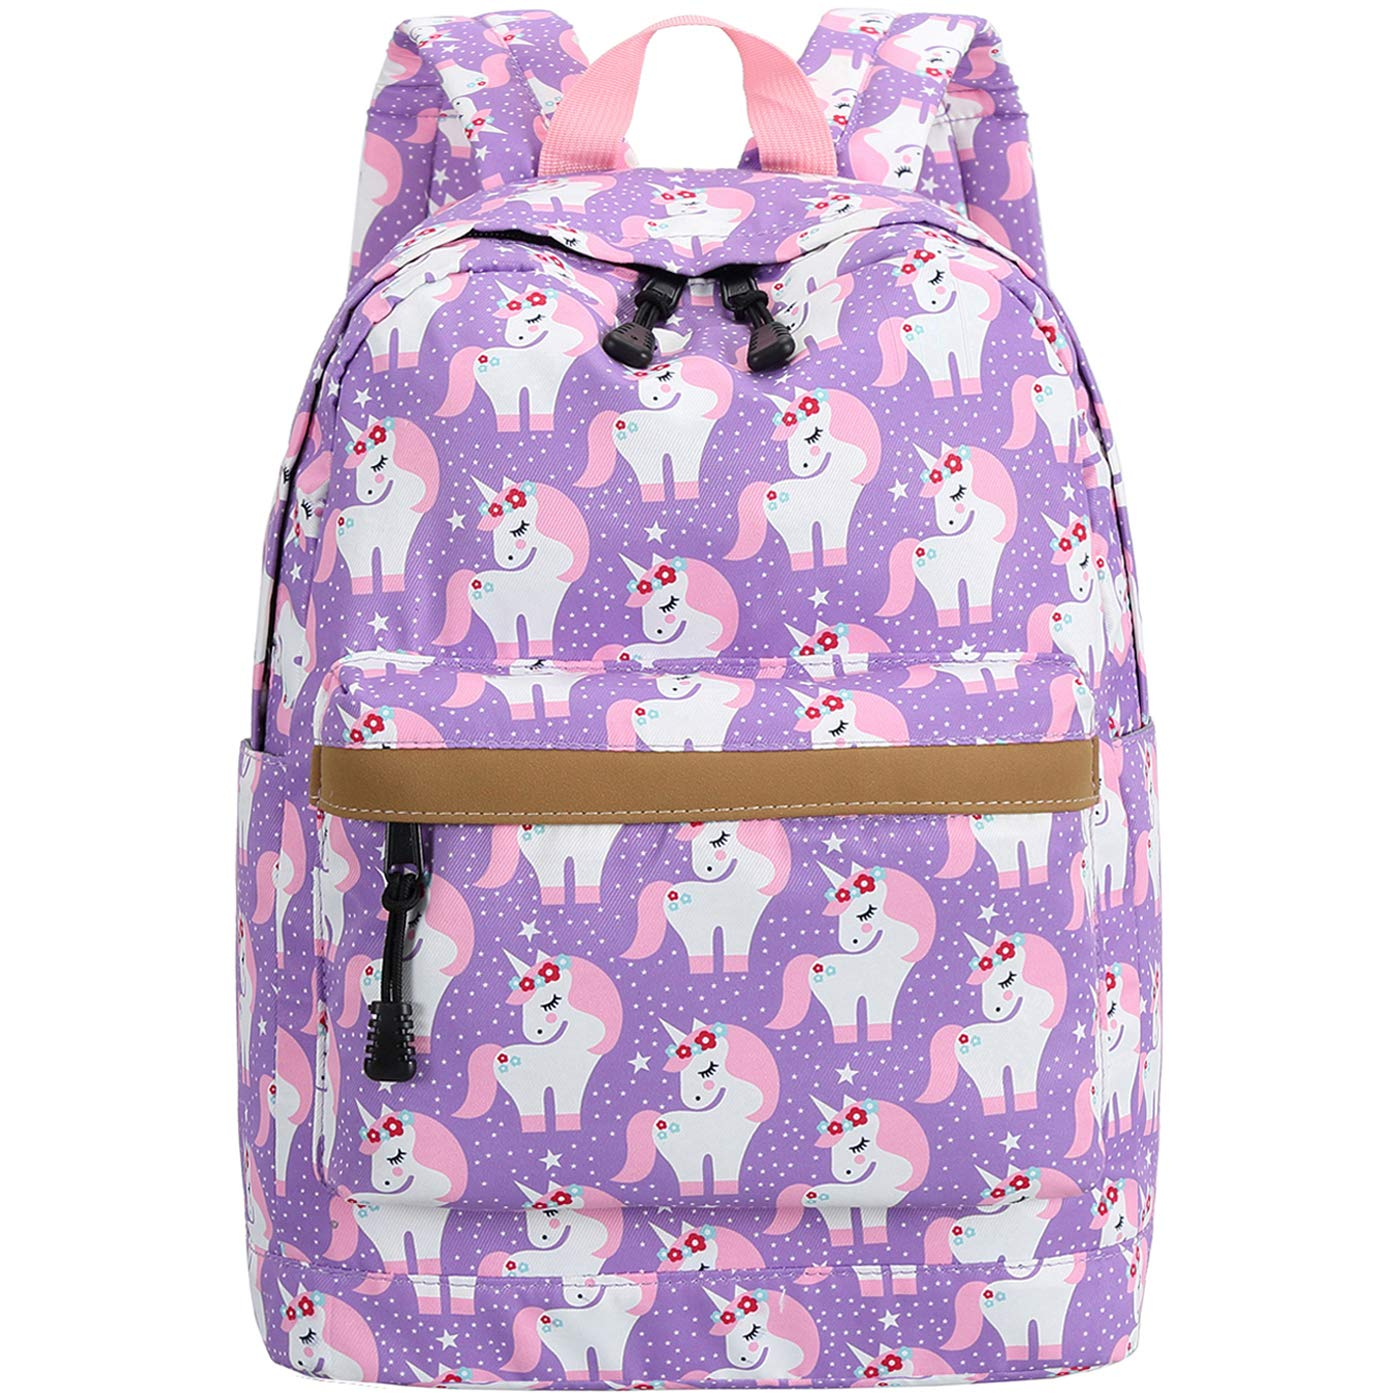 Preschool Backpack for Kids Girls Toddler Backpack Kindergarten School Bookbags (Cute unicorn-Purple) by CAMTOP